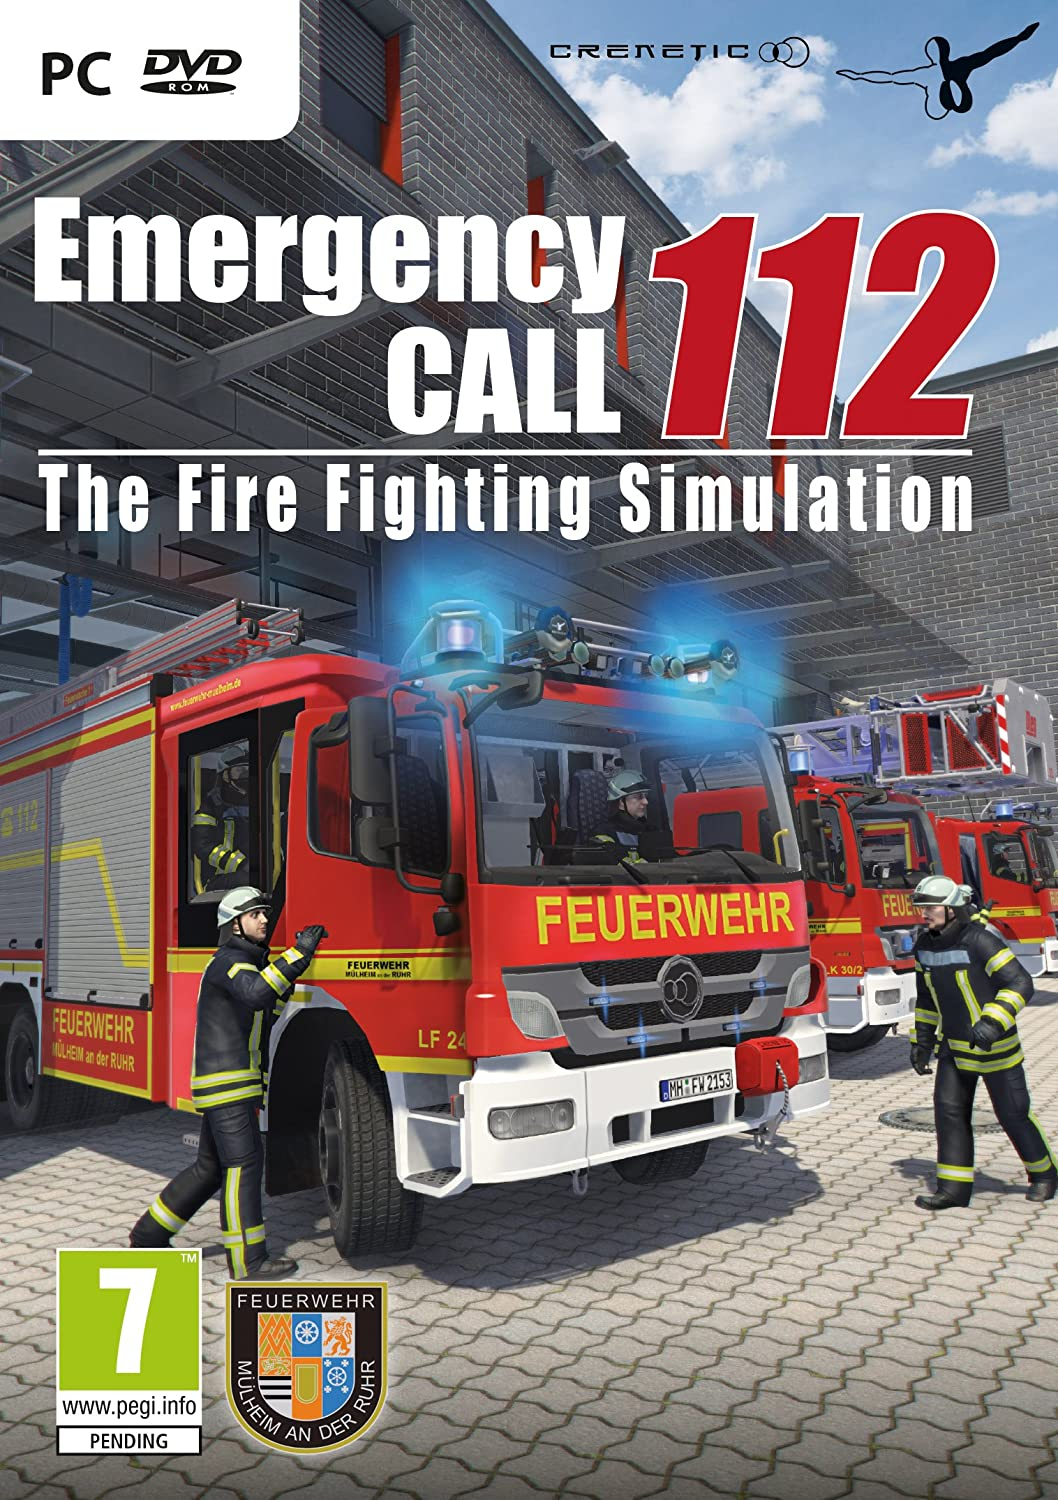 Emergency Call 112 - The Fire Fighting Simulation (PC DVD